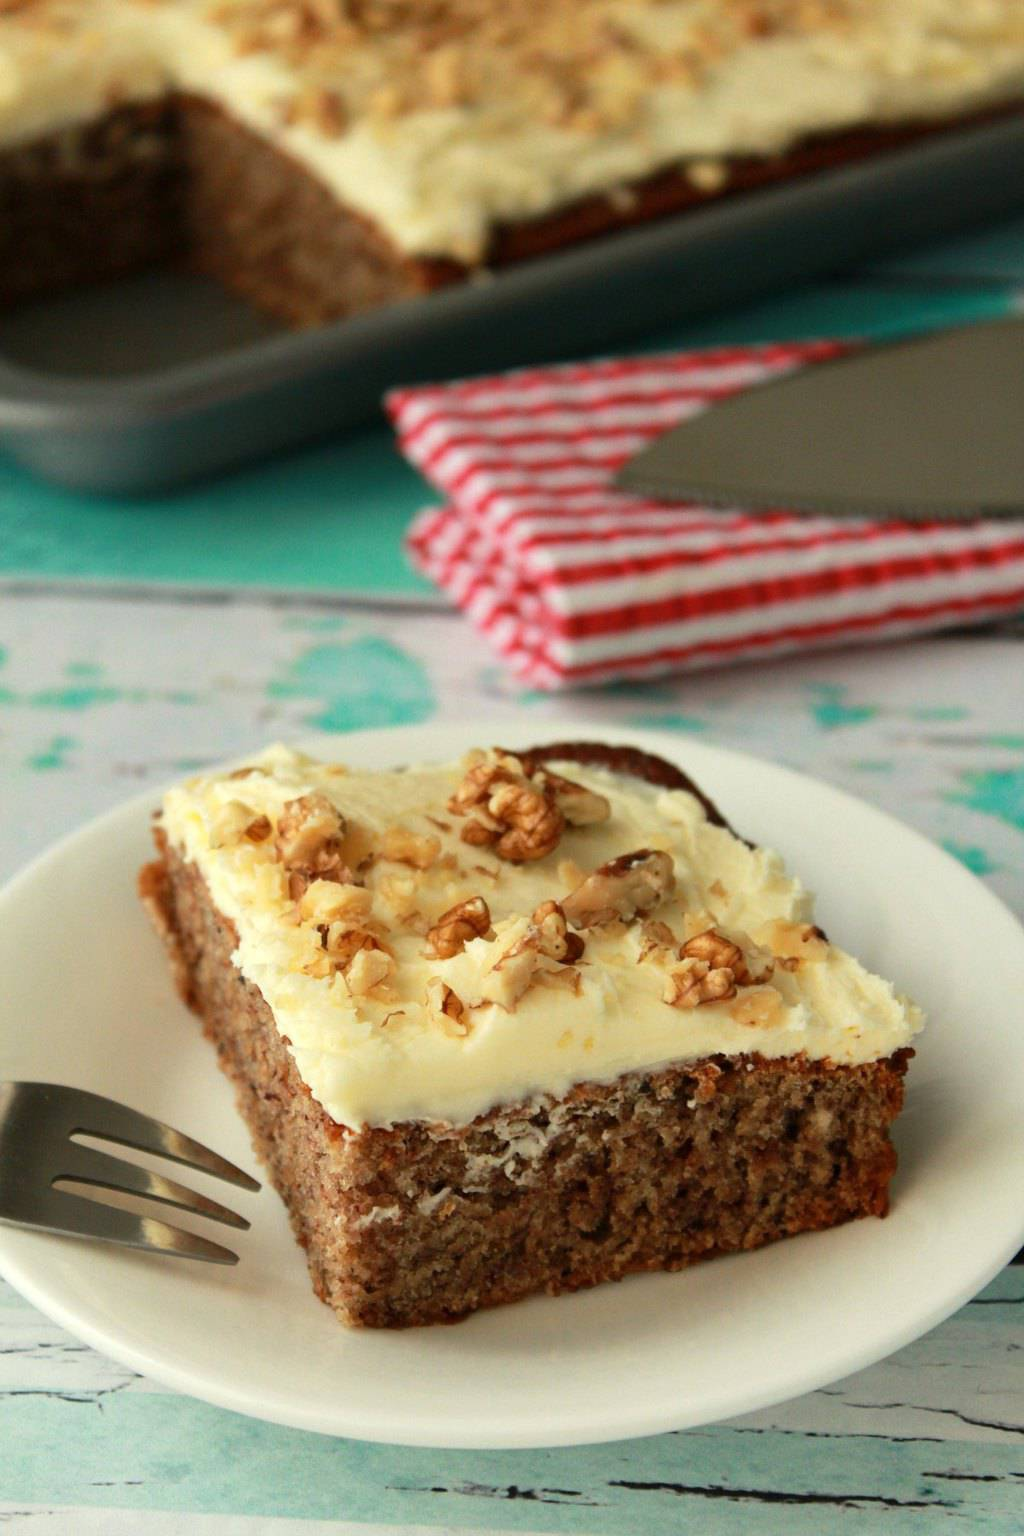 Moist and Delicious Vegan Banana Cake with Lemon Frosting and crushed walnuts. Light and fluffy. #vegan #lovingitvegan #bananacake #dessert